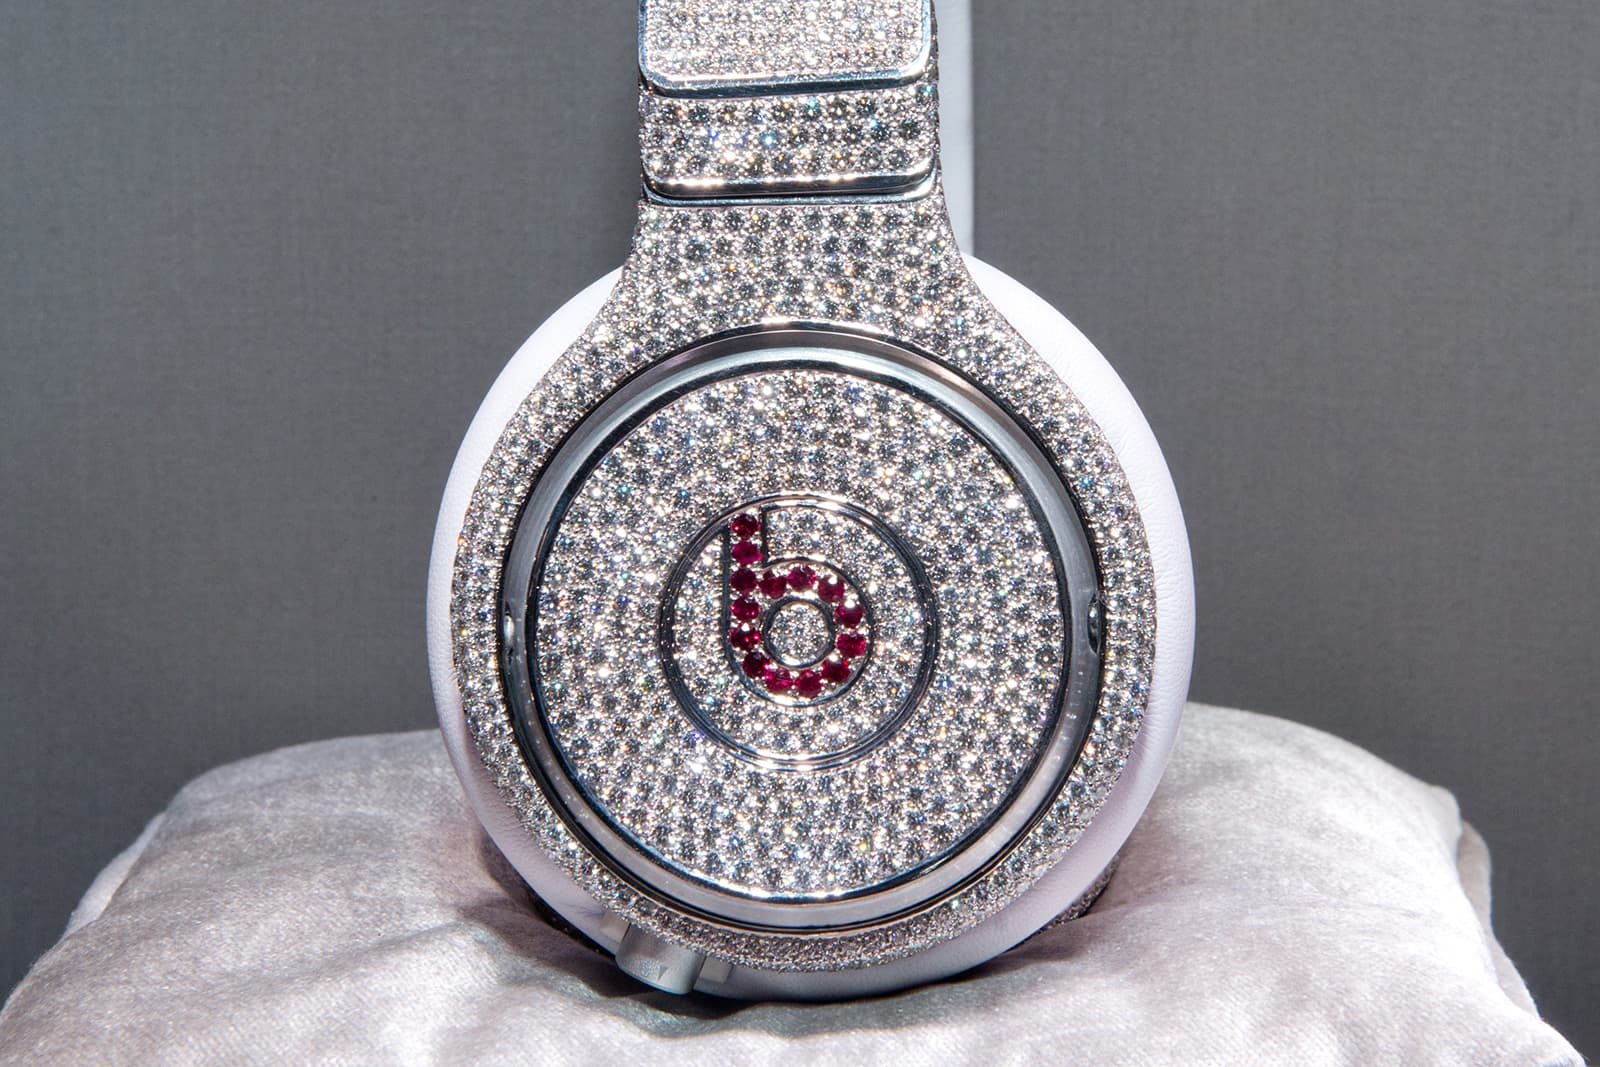 The Beats x Graff Diamond wireless headphones